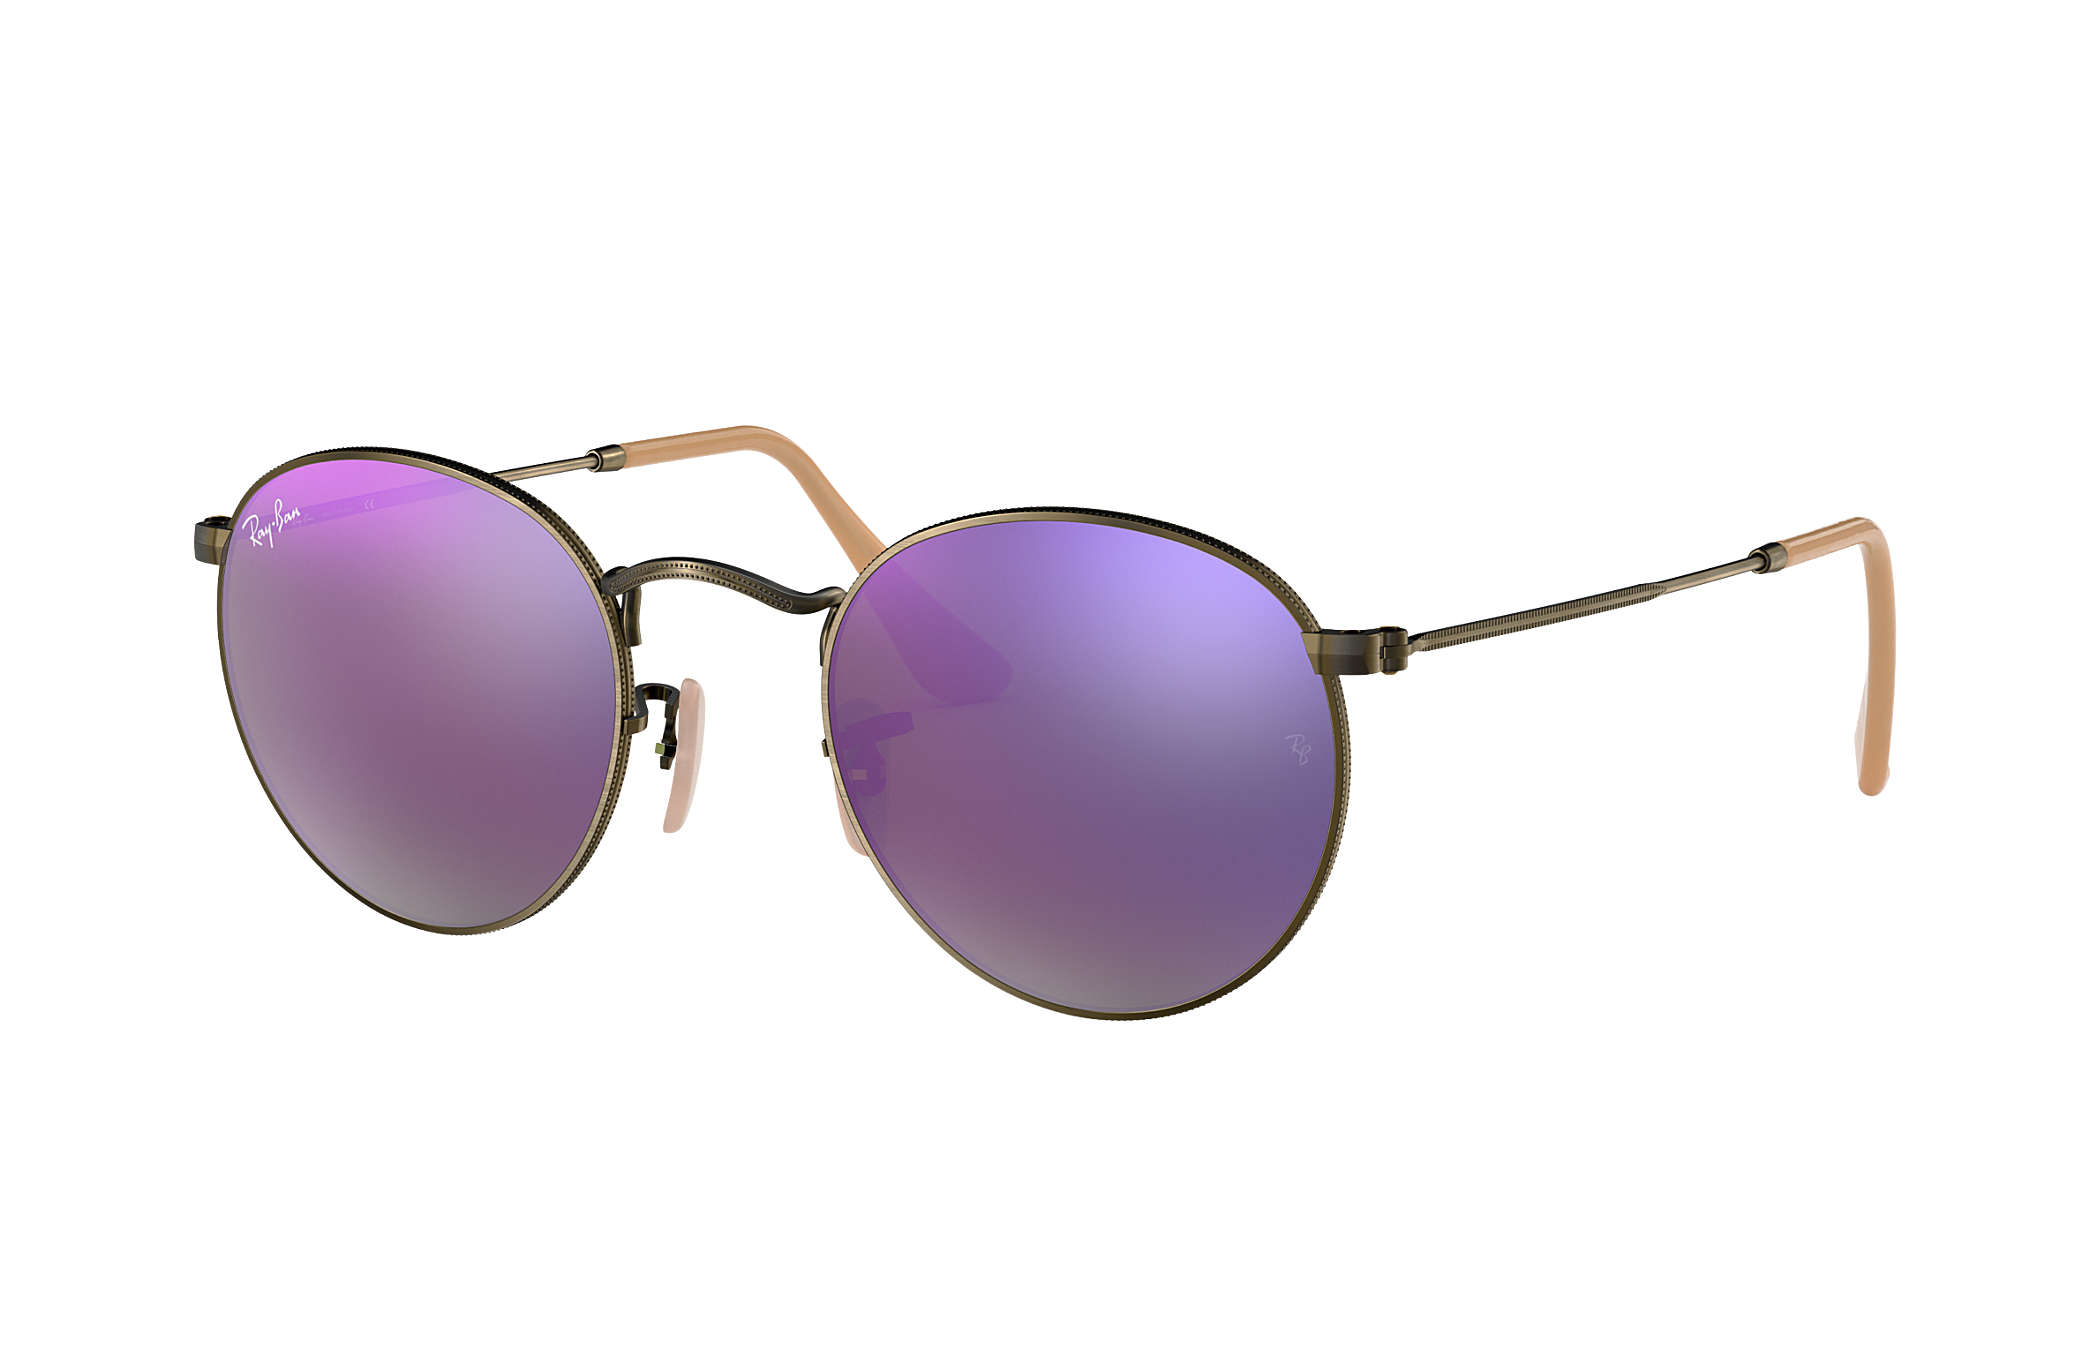 51a44071af Ray-Ban Round Flash Lenses RB3447 Bronze-Copper - Metal - Lilac ...